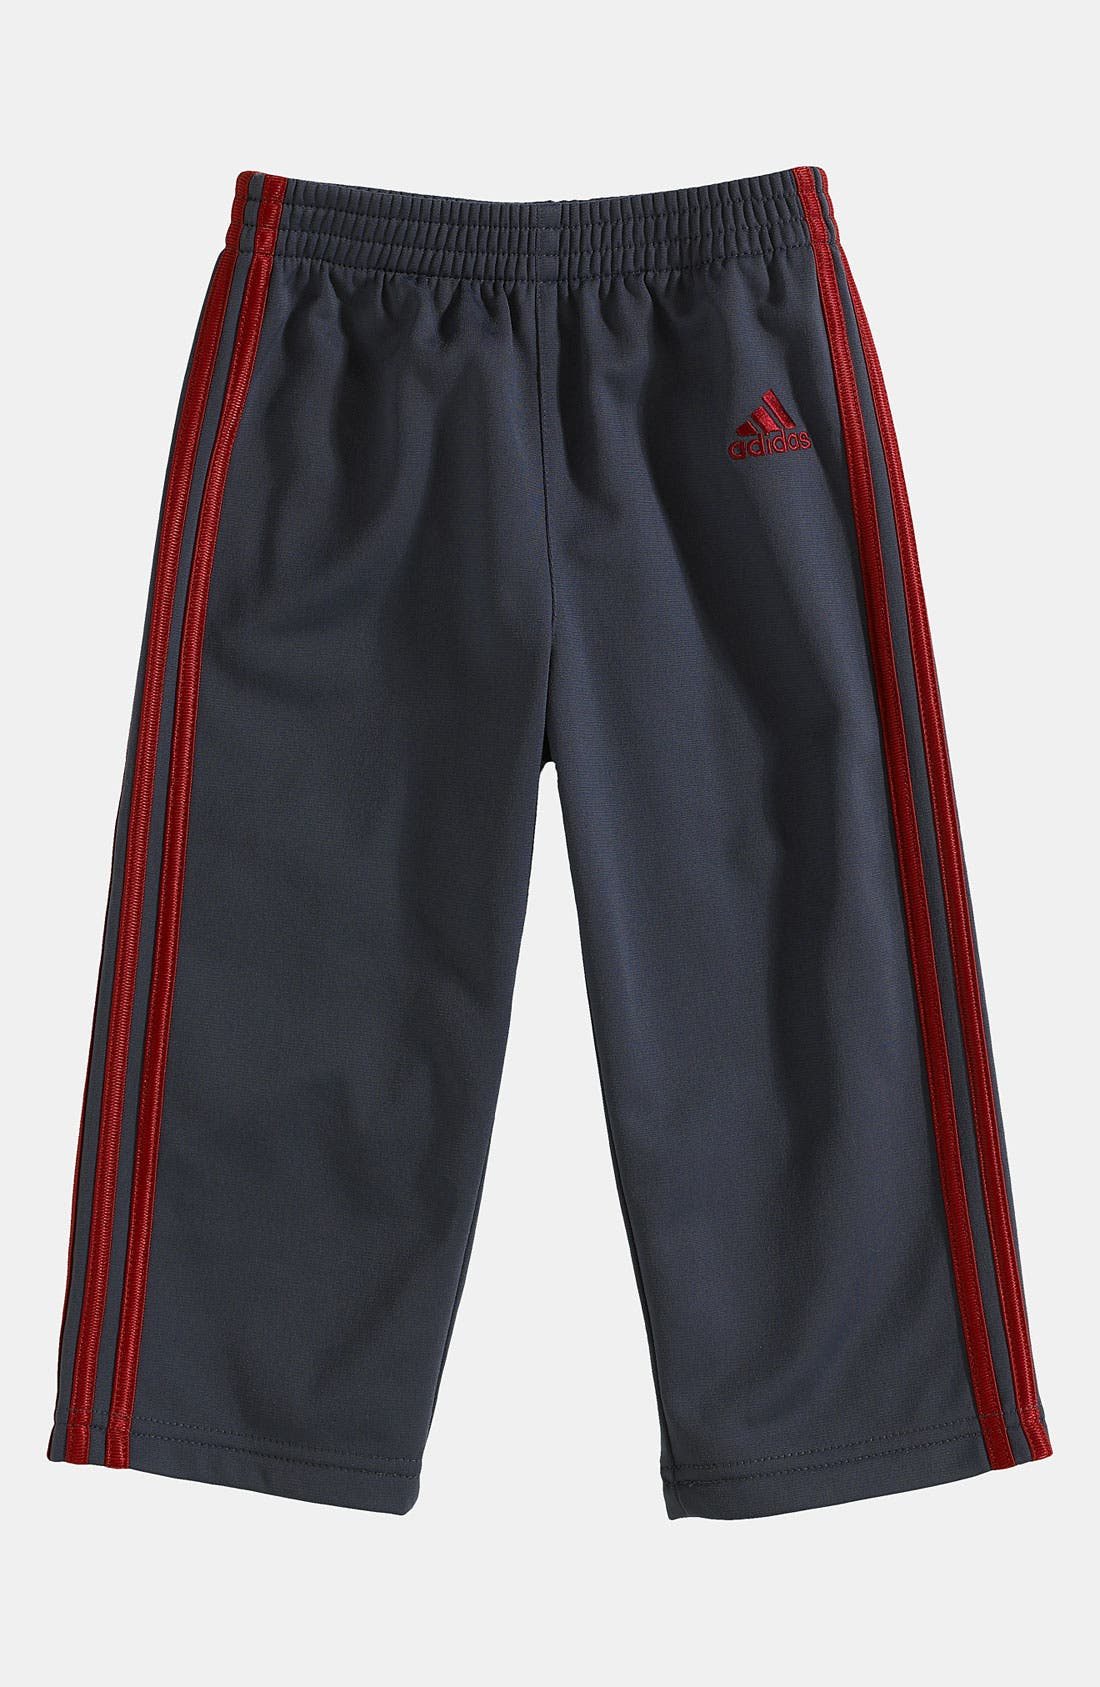 Alternate Image 1 Selected - adidas Tricot Pants (Toddler)